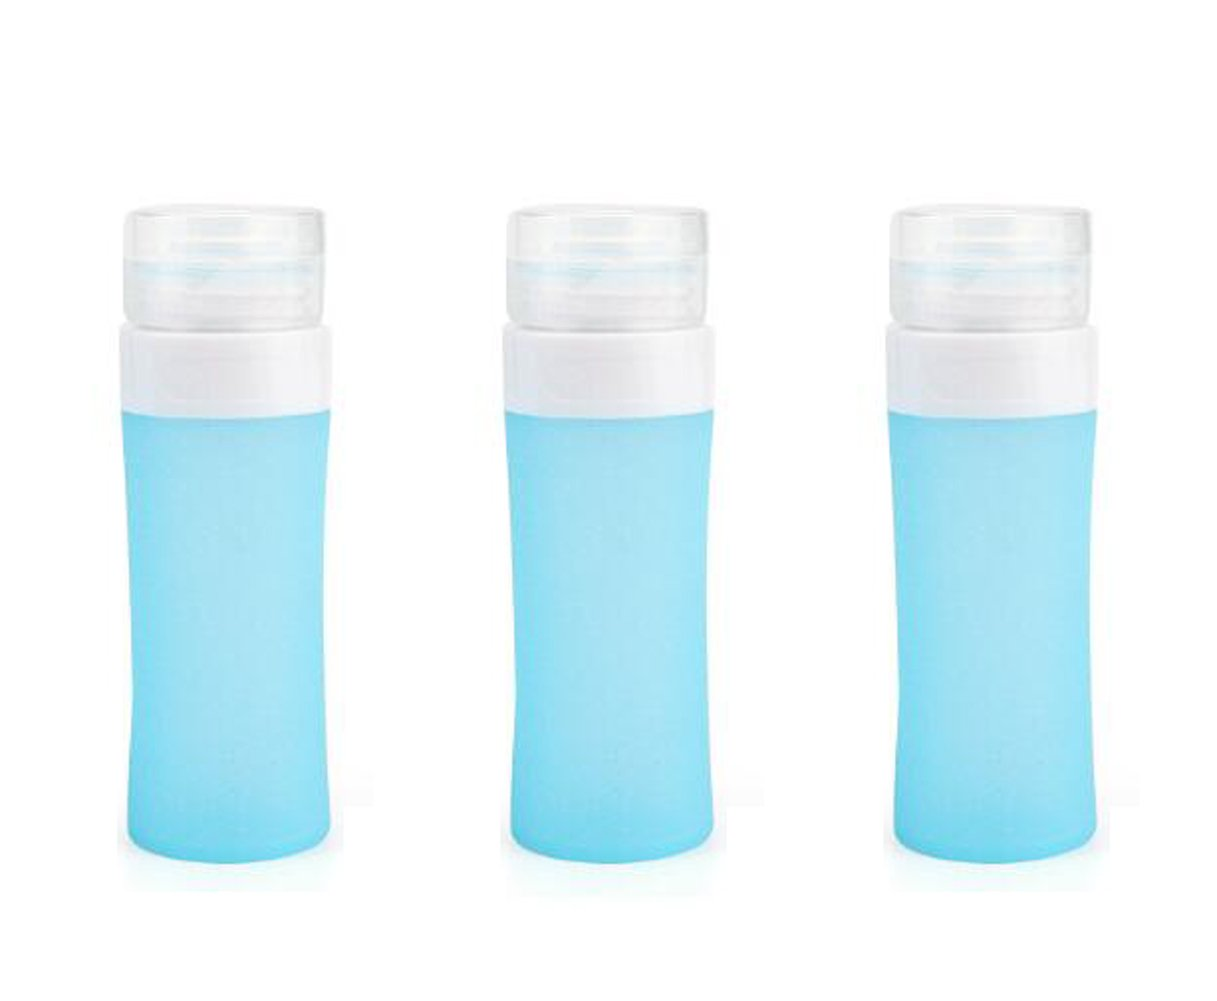 3Pcs Round Silicon Leakproof Travel bottles Empty Refillable Squeeze Containers Tubes Perfect for Carry-on Luggage Liquid Toiletries and Cream Blue (60ml/2oz)